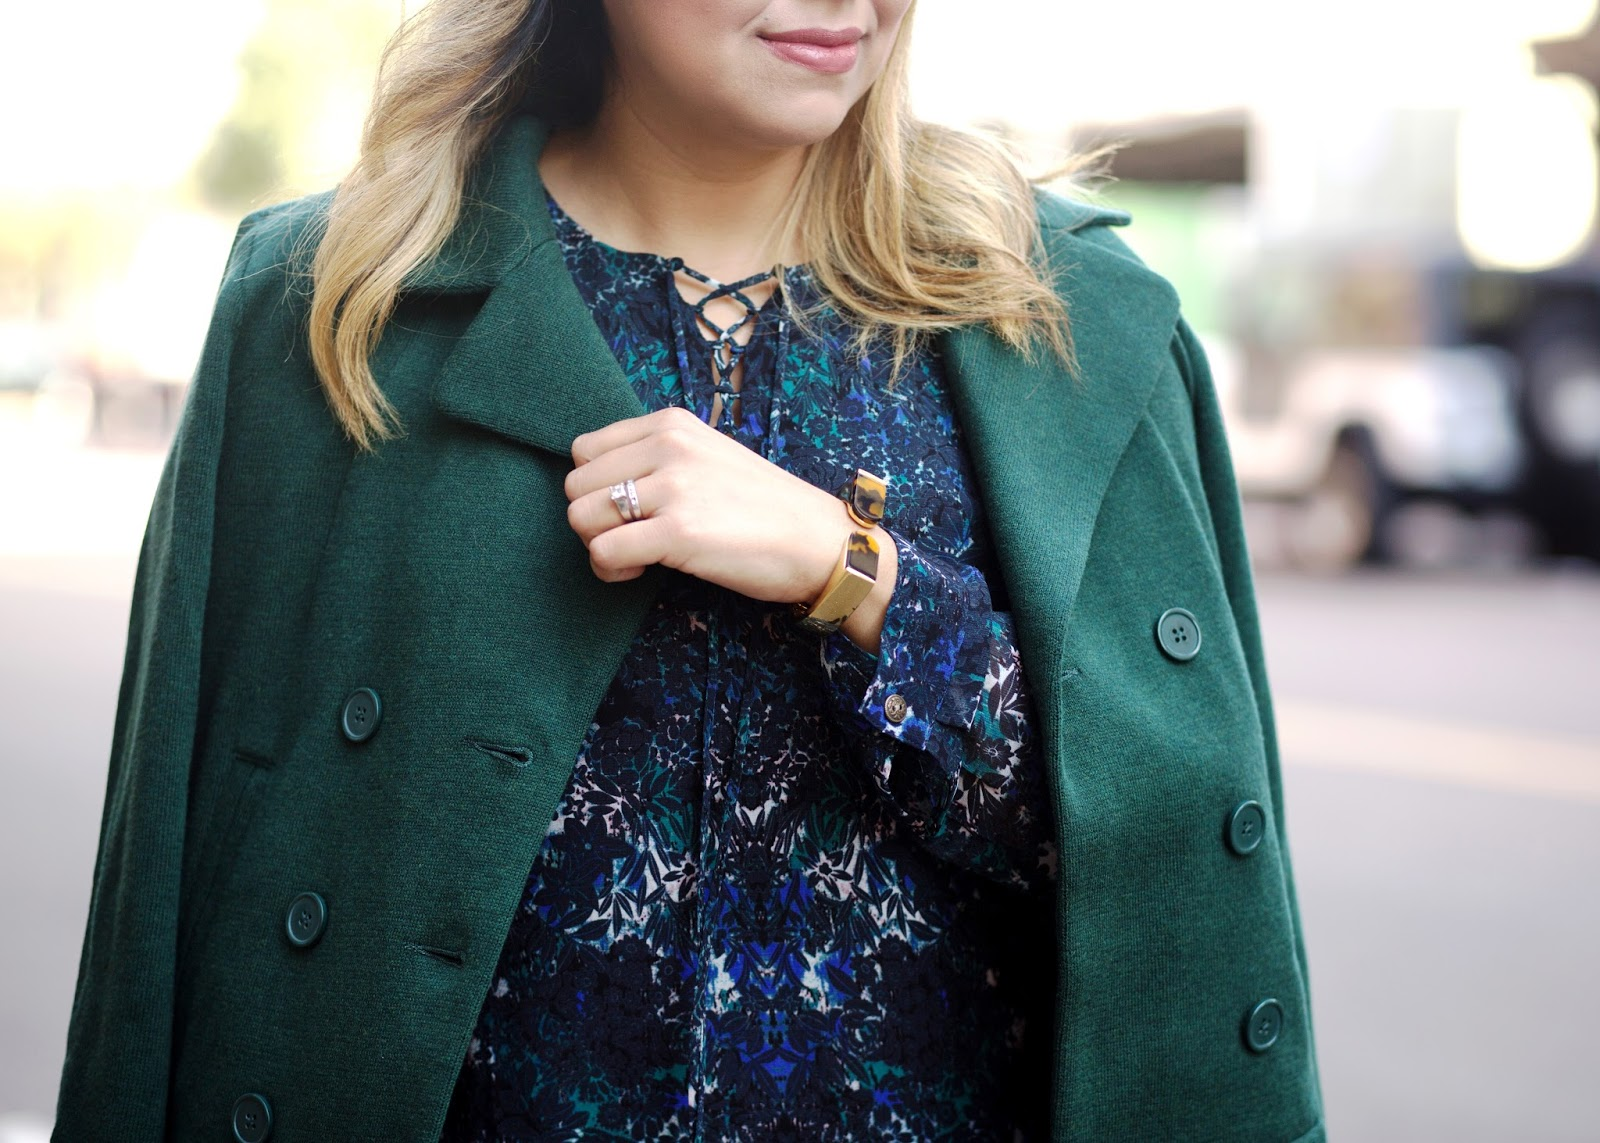 fall patterned dresses, green coats for fall, affordable green coat